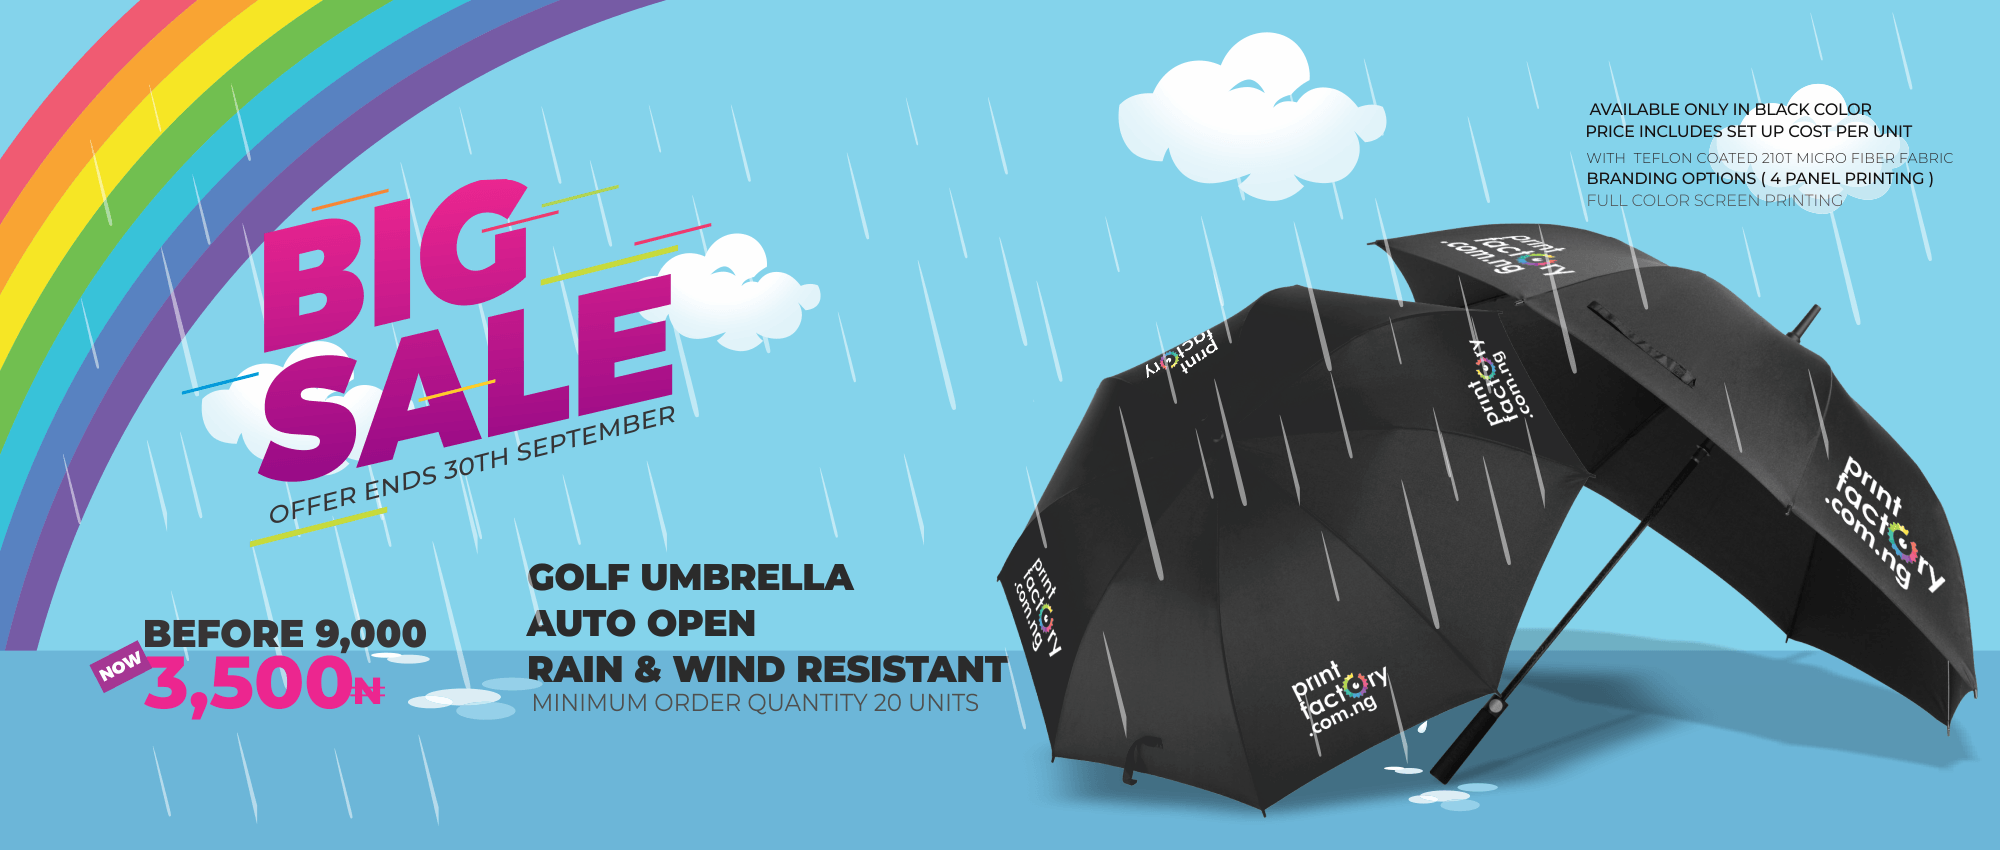 big sale Promo - Umbrella